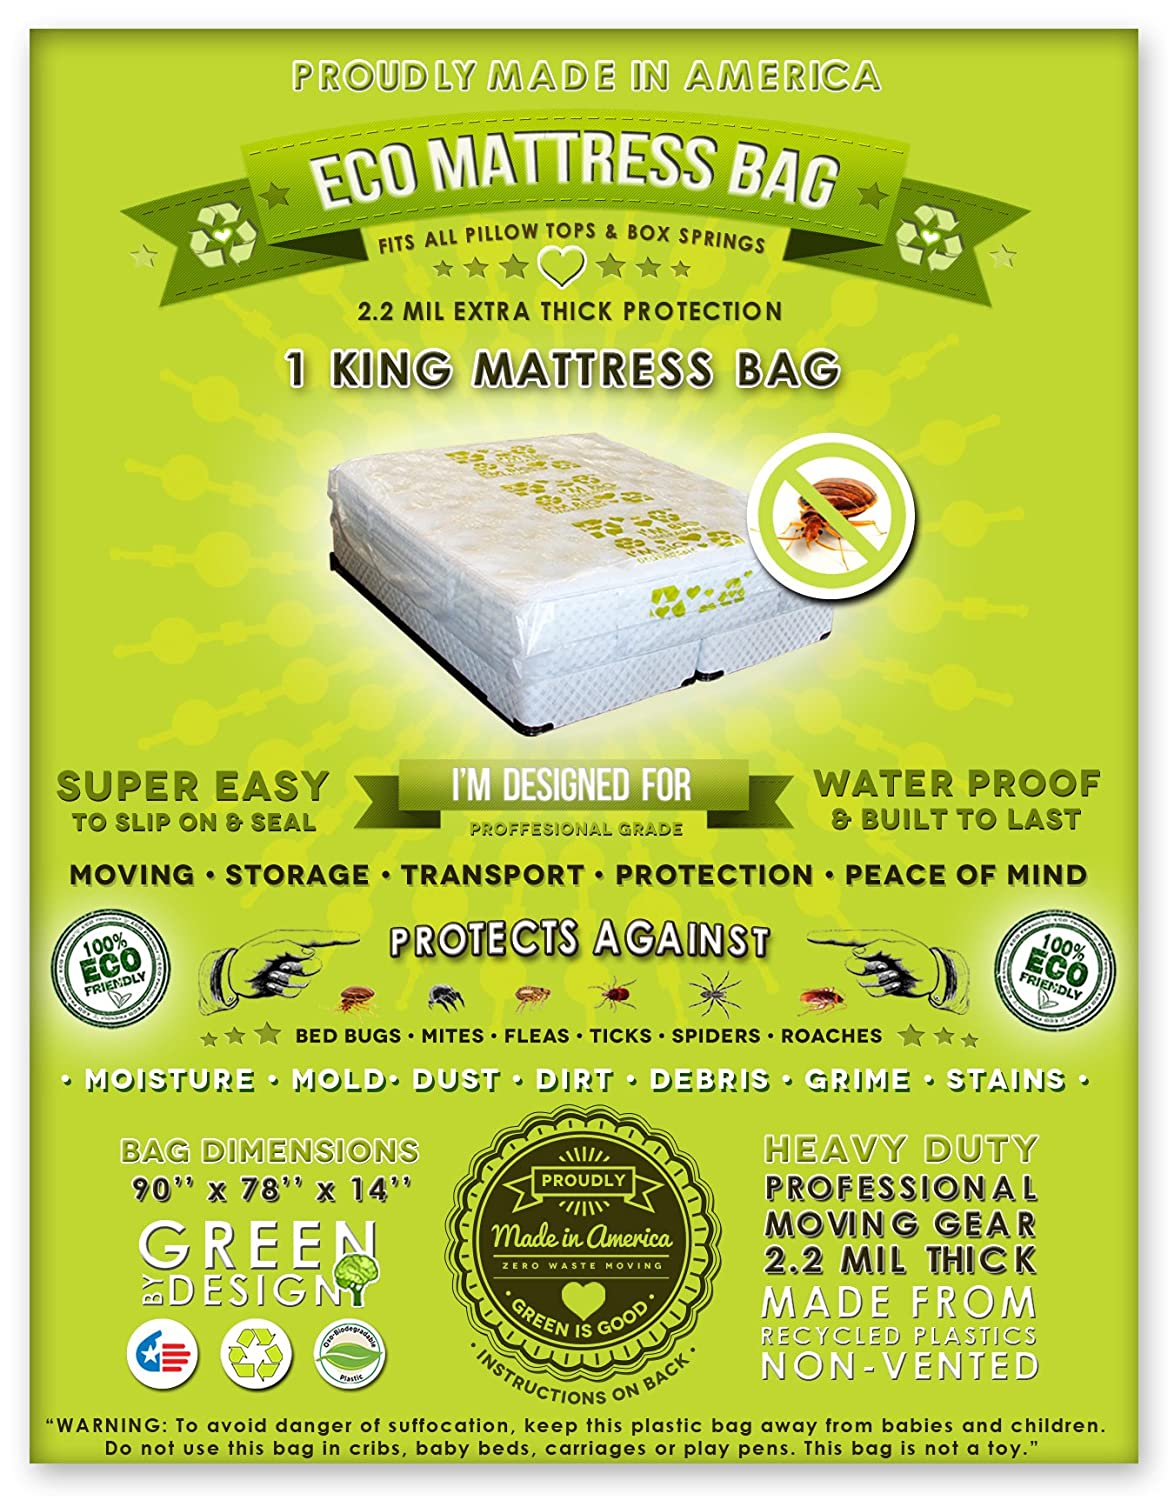 1 King Size Mattress Bag. Fits All Pillow Tops and Box Springs. Ideal for Moving, Storage and Protecting Your Mattress. Heavy Duty Professional Grade. Easy to Slip on and Seal. Sleep with Peace of Mind and Don't Let the Bed B